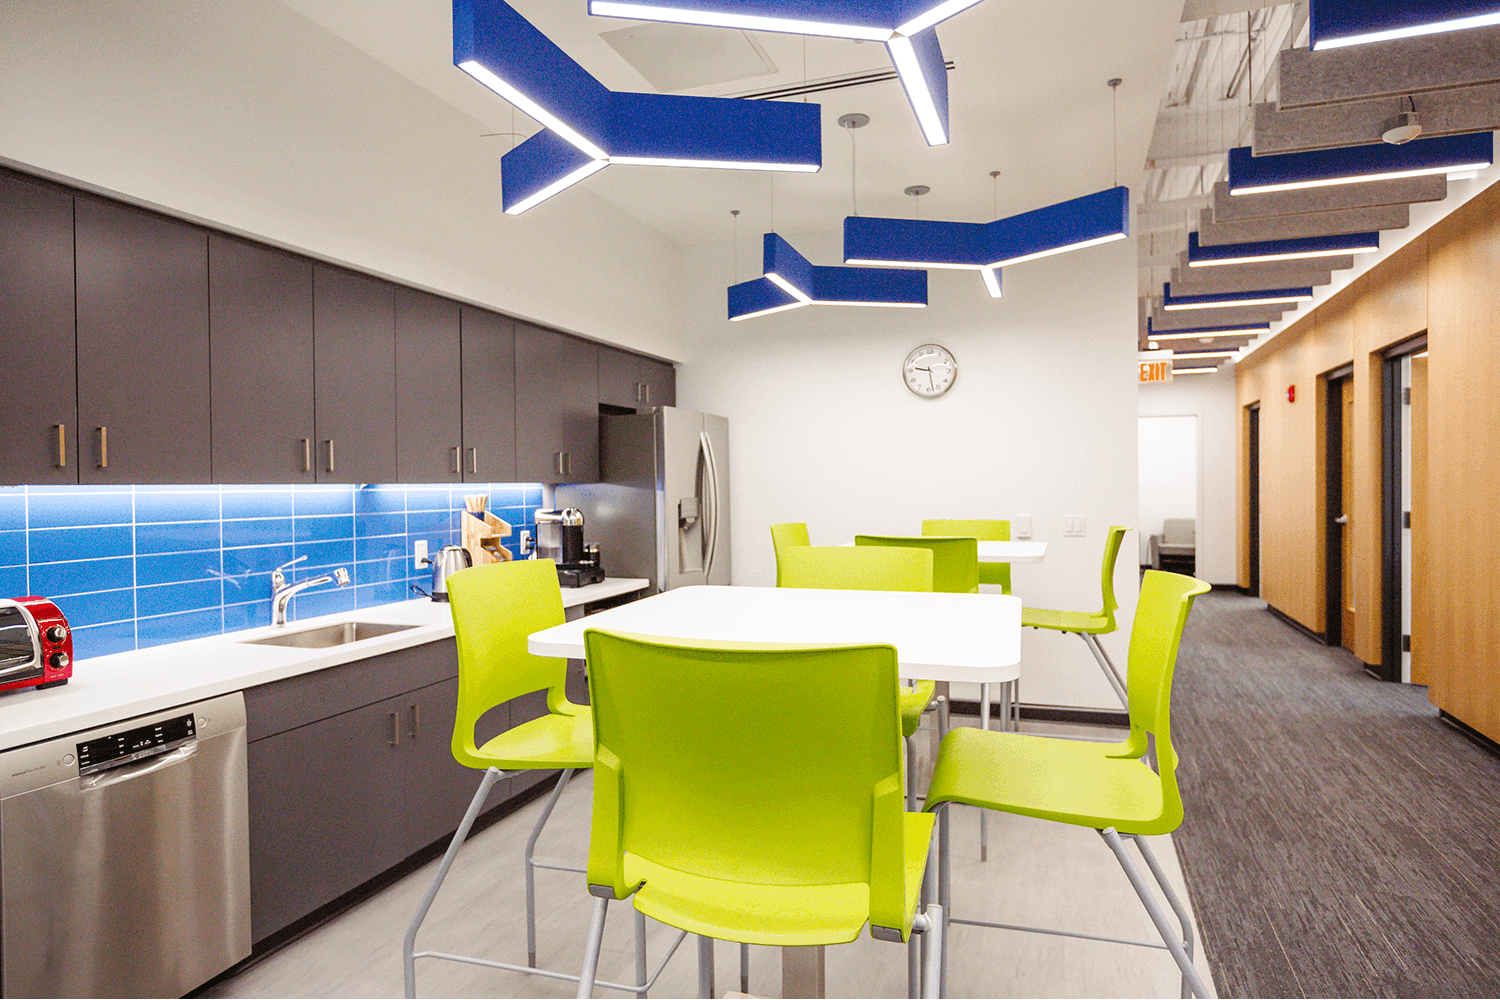 break area with lime green chairs, white tables, and geometric light fixtures